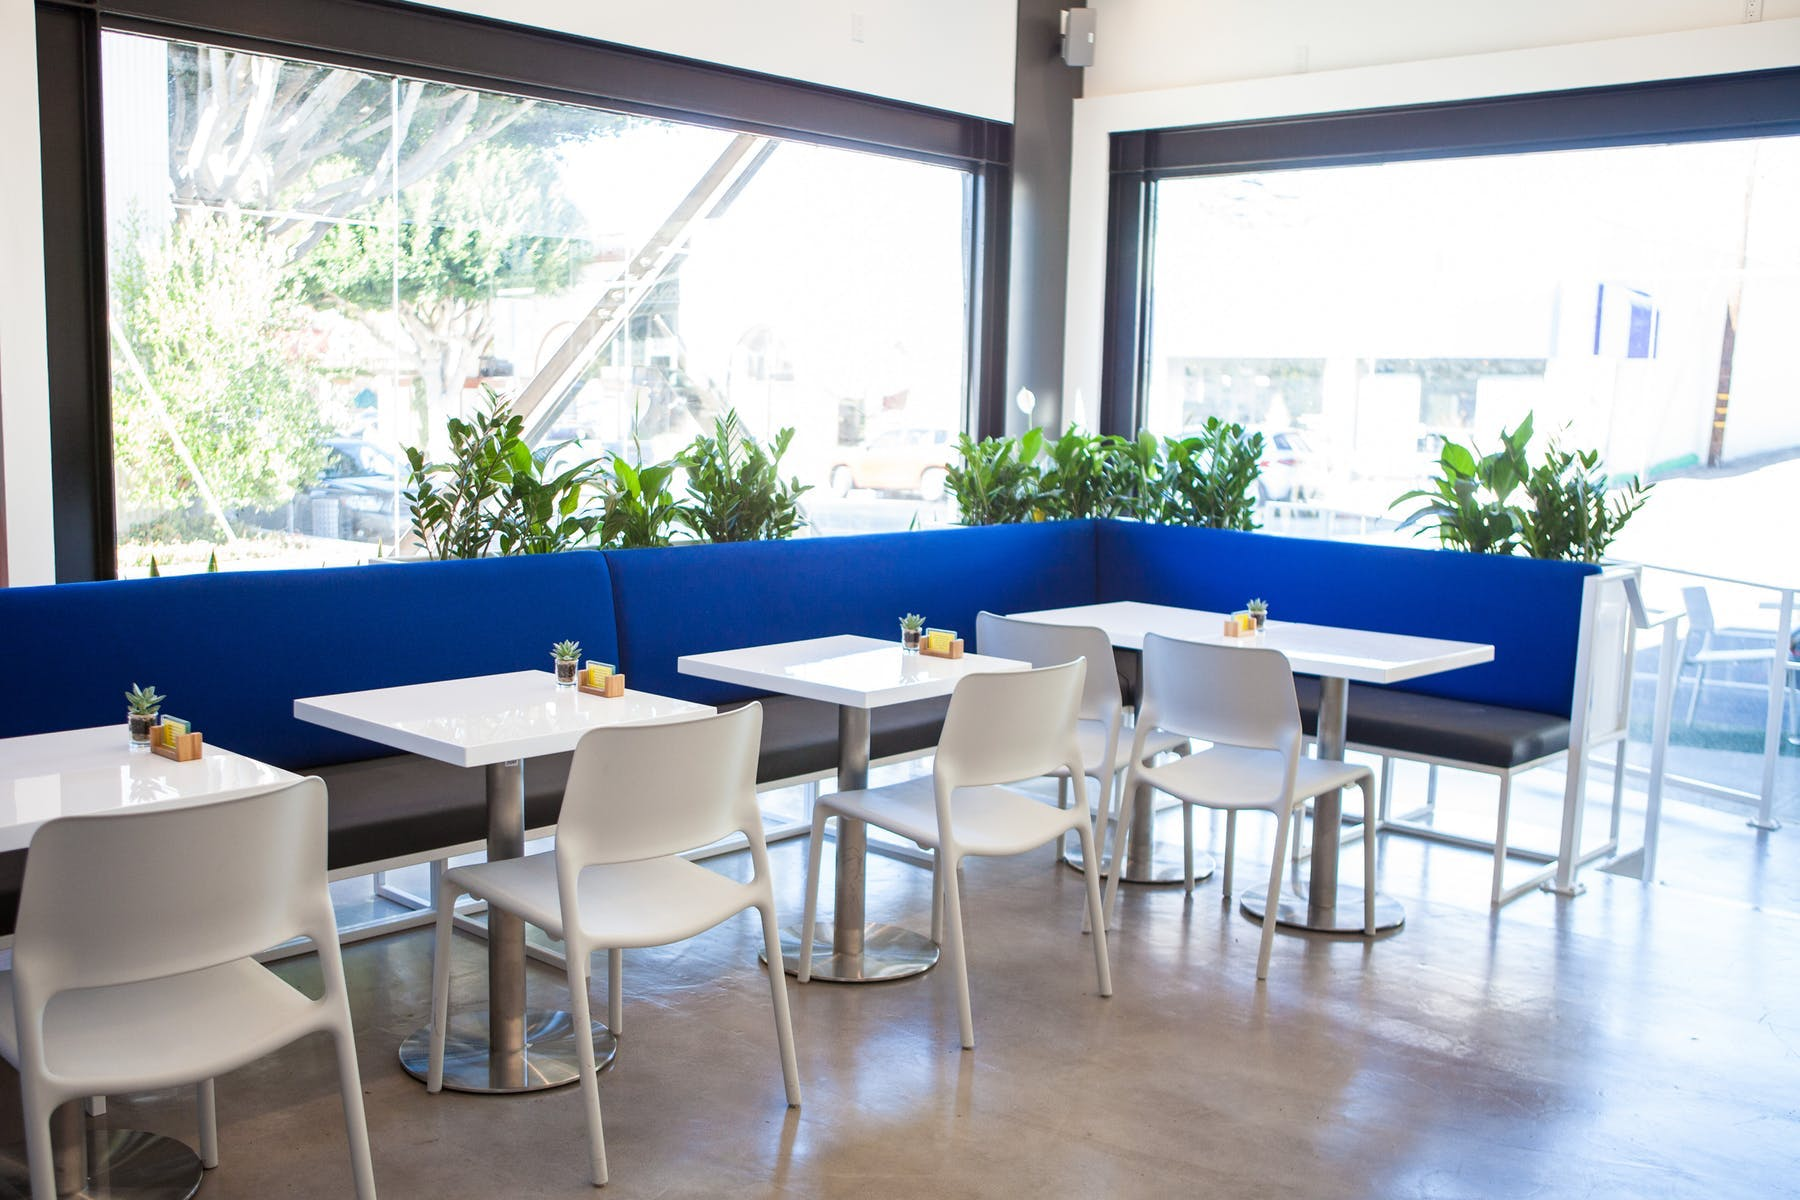 empty restaurant with white chairs and tables with a blue booth lining the edge of the windows along the walls of the restraurant with plants behind